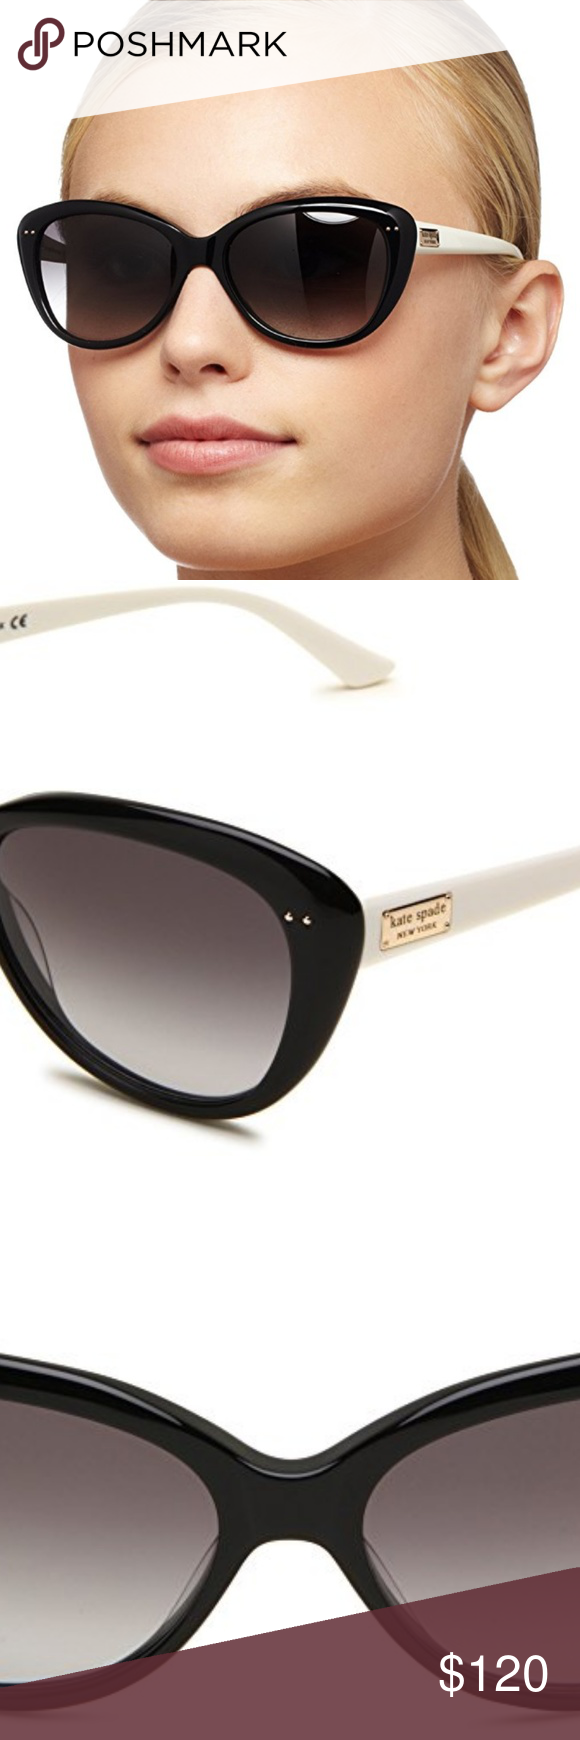 13ed9b6498 Kate Spade New York Angelique Cat-Eye Sunglasses Kate Spade New York  Angelique Cat-